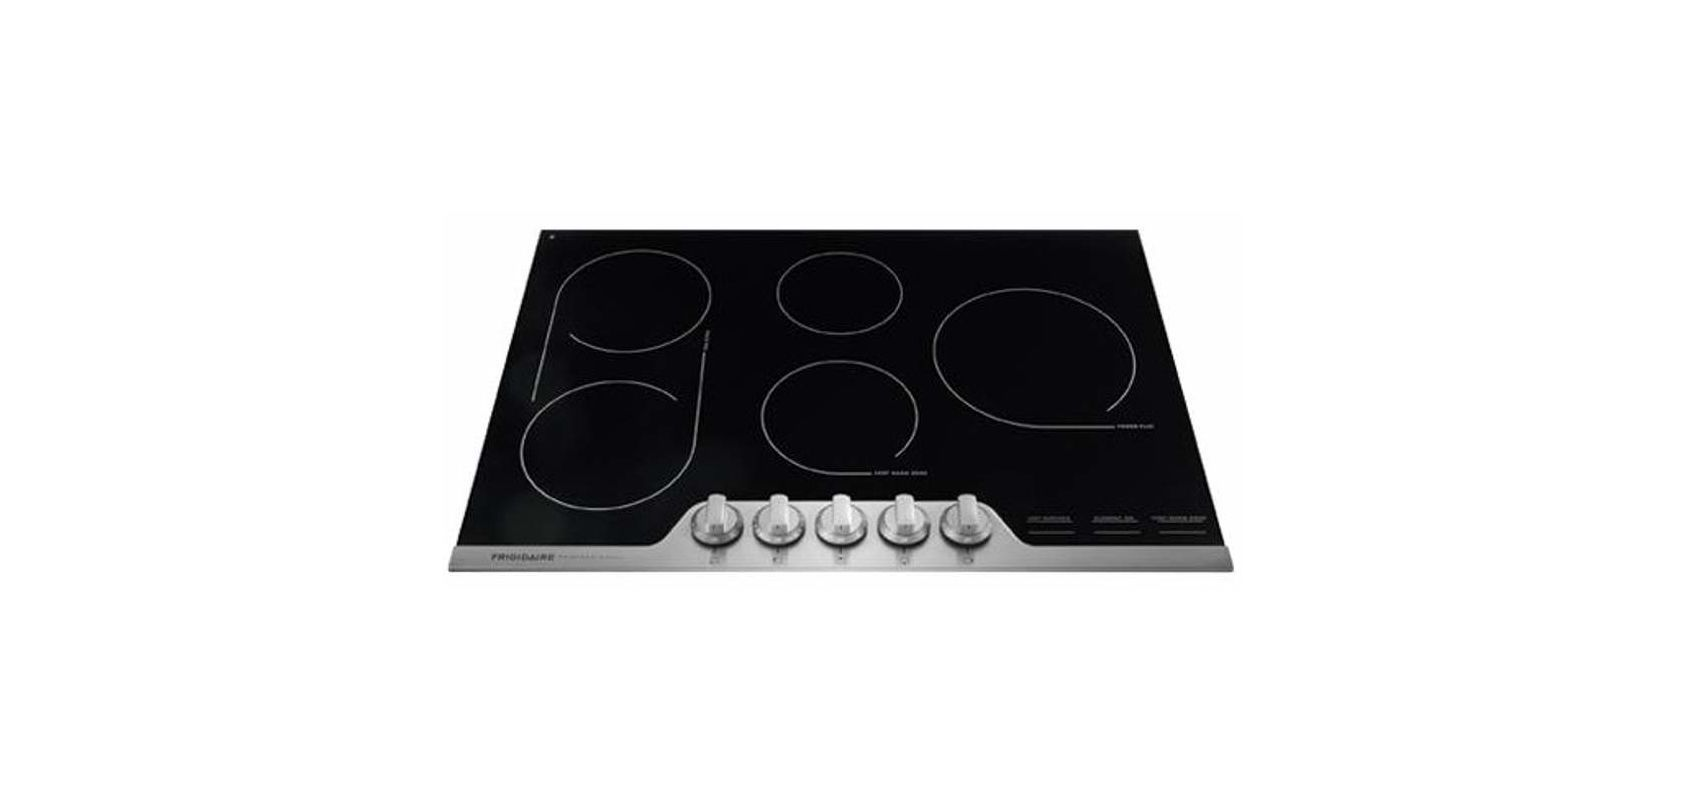 Frigidaire Fpec3077r Electric Cooktop Stainless Steel Kitchen Stove